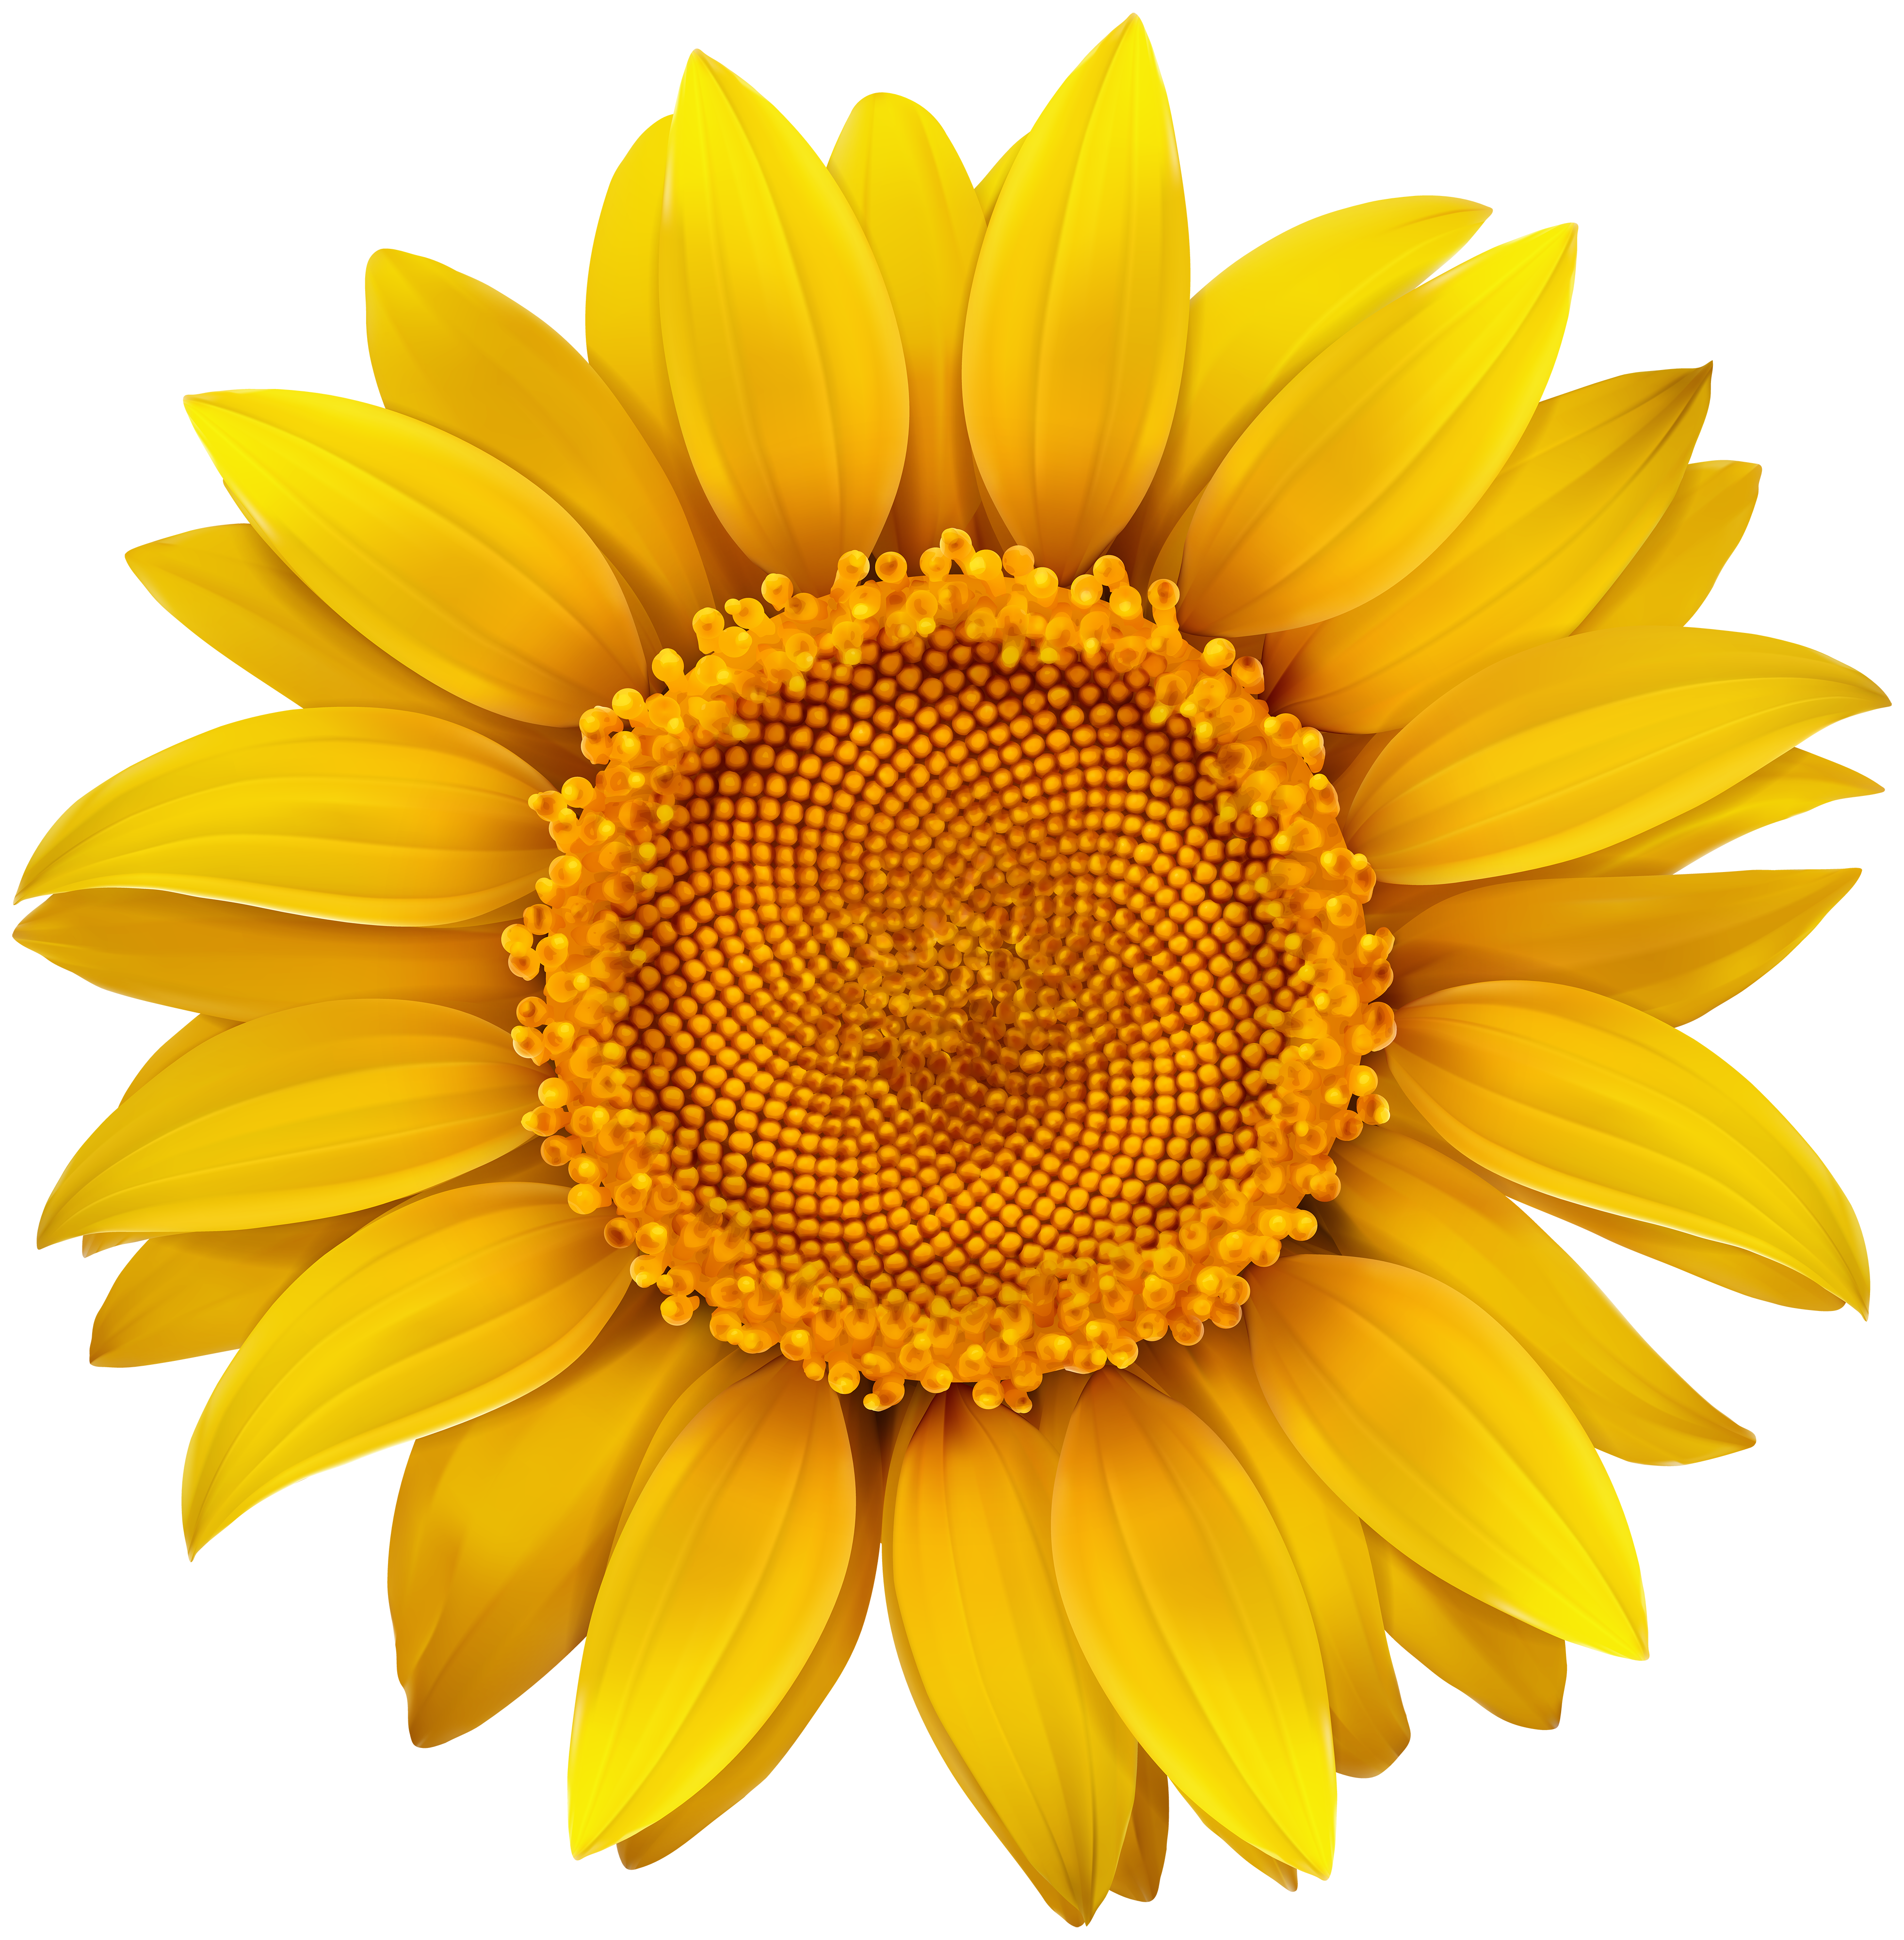 Sun flower png. Sunflower image gallery yopriceville